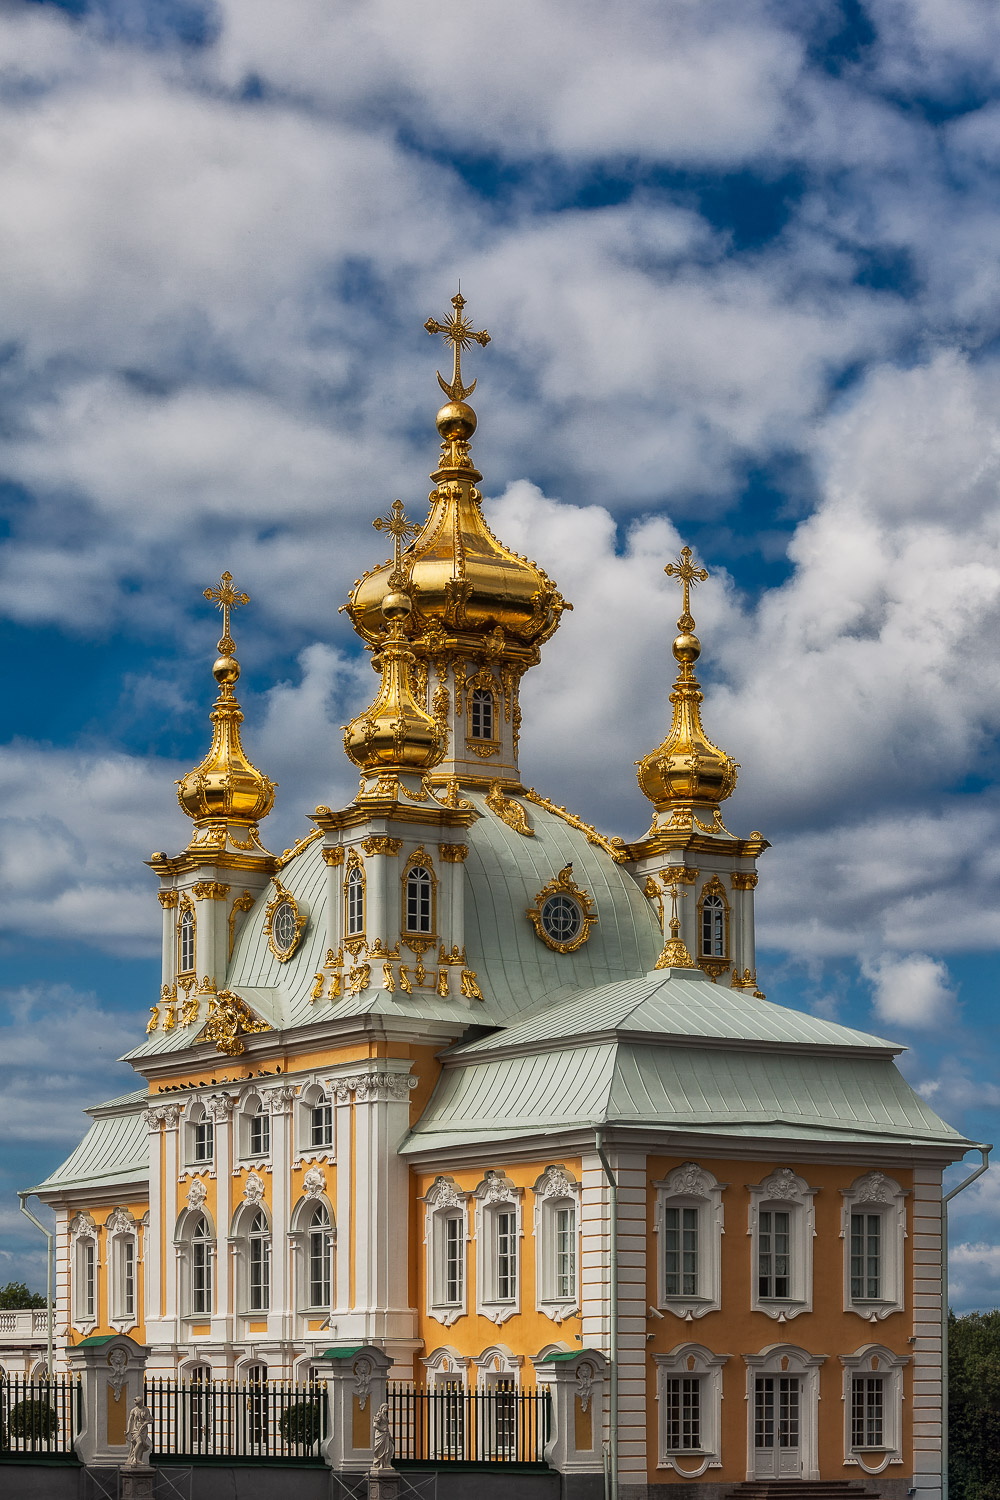 Spectacular    golden domes   , gleaming on a summer's day, set off a classic    Russian church    at    Peterhof Summer Palace    near    St. Petersburg, Russia   .